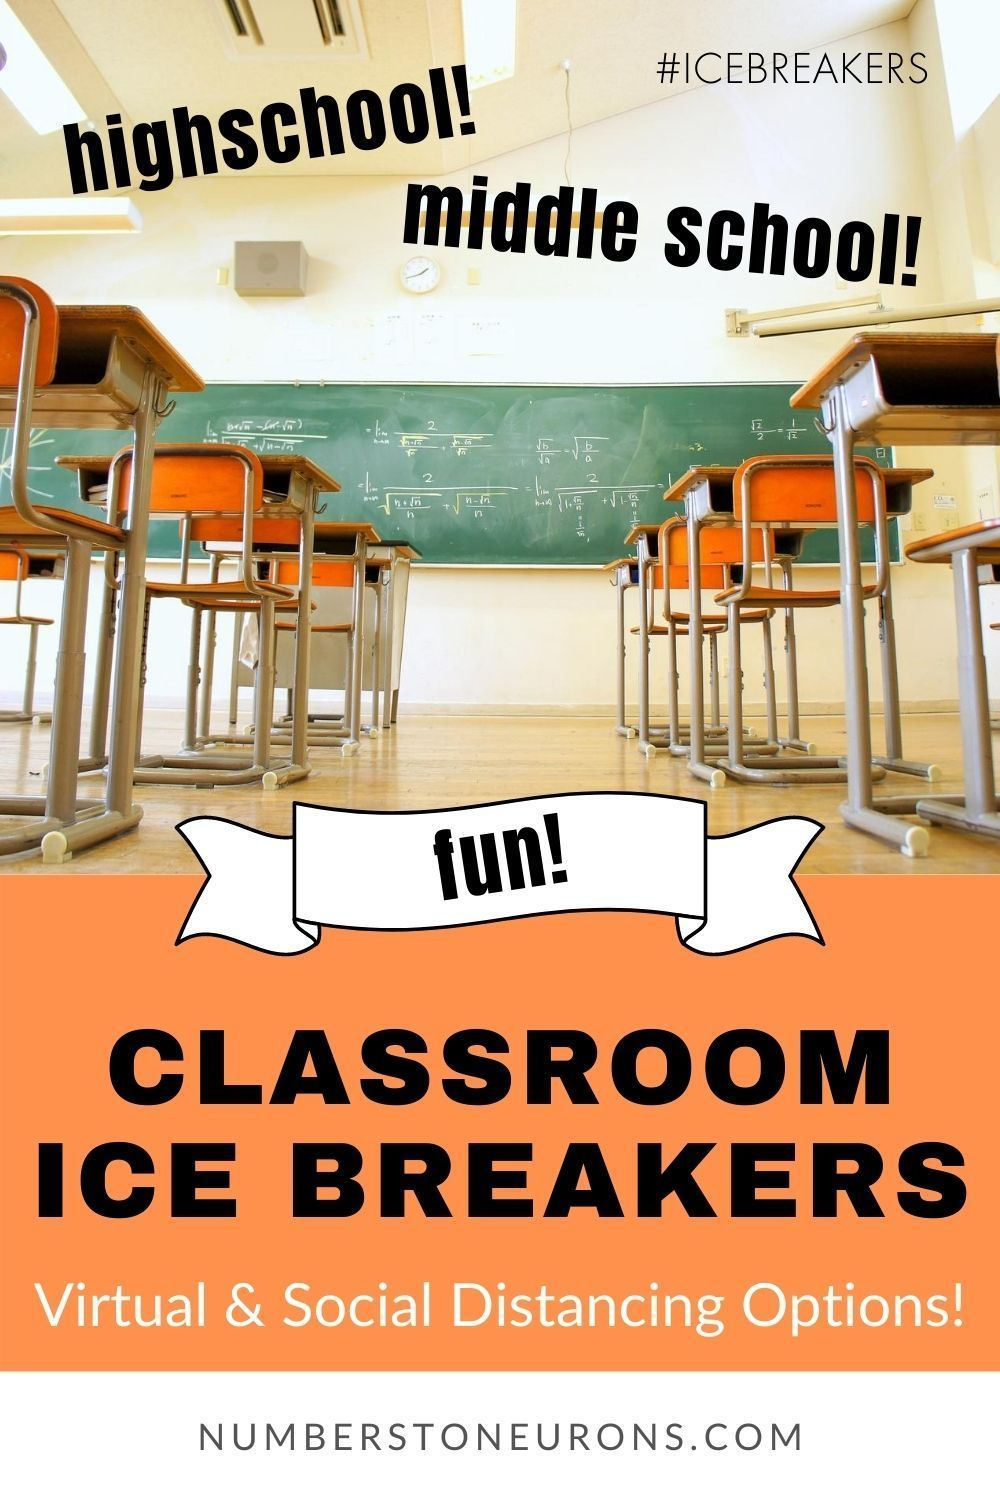 Virtual Classroom Icebreakers & Ice Breakers with Social